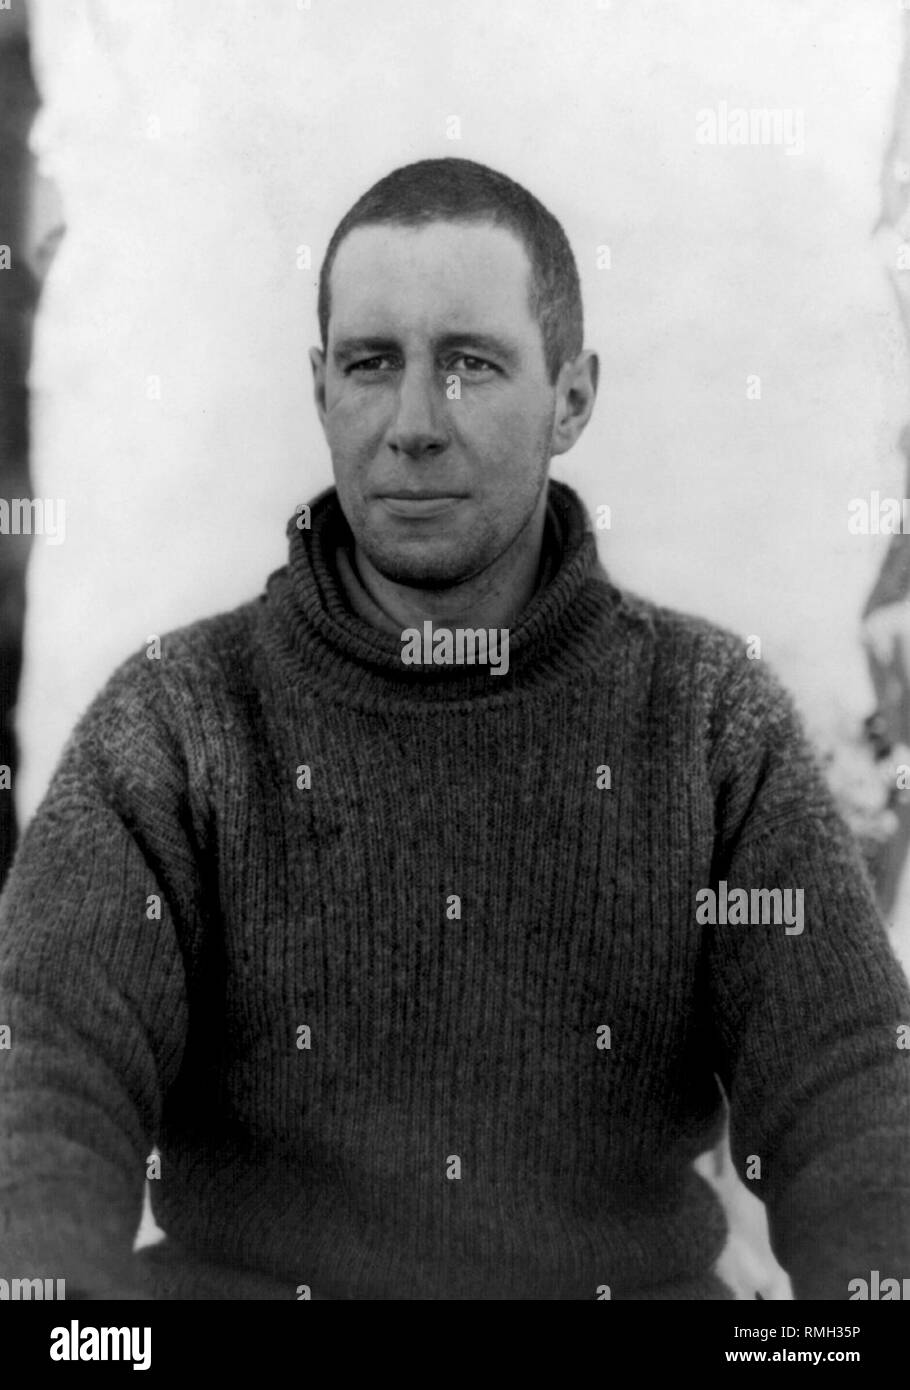 captain lawrence e.g. oates part of the Terra Nova expedition during the British Antarctic Expedition to Antarctica  Photo taken 1910 - Stock Image